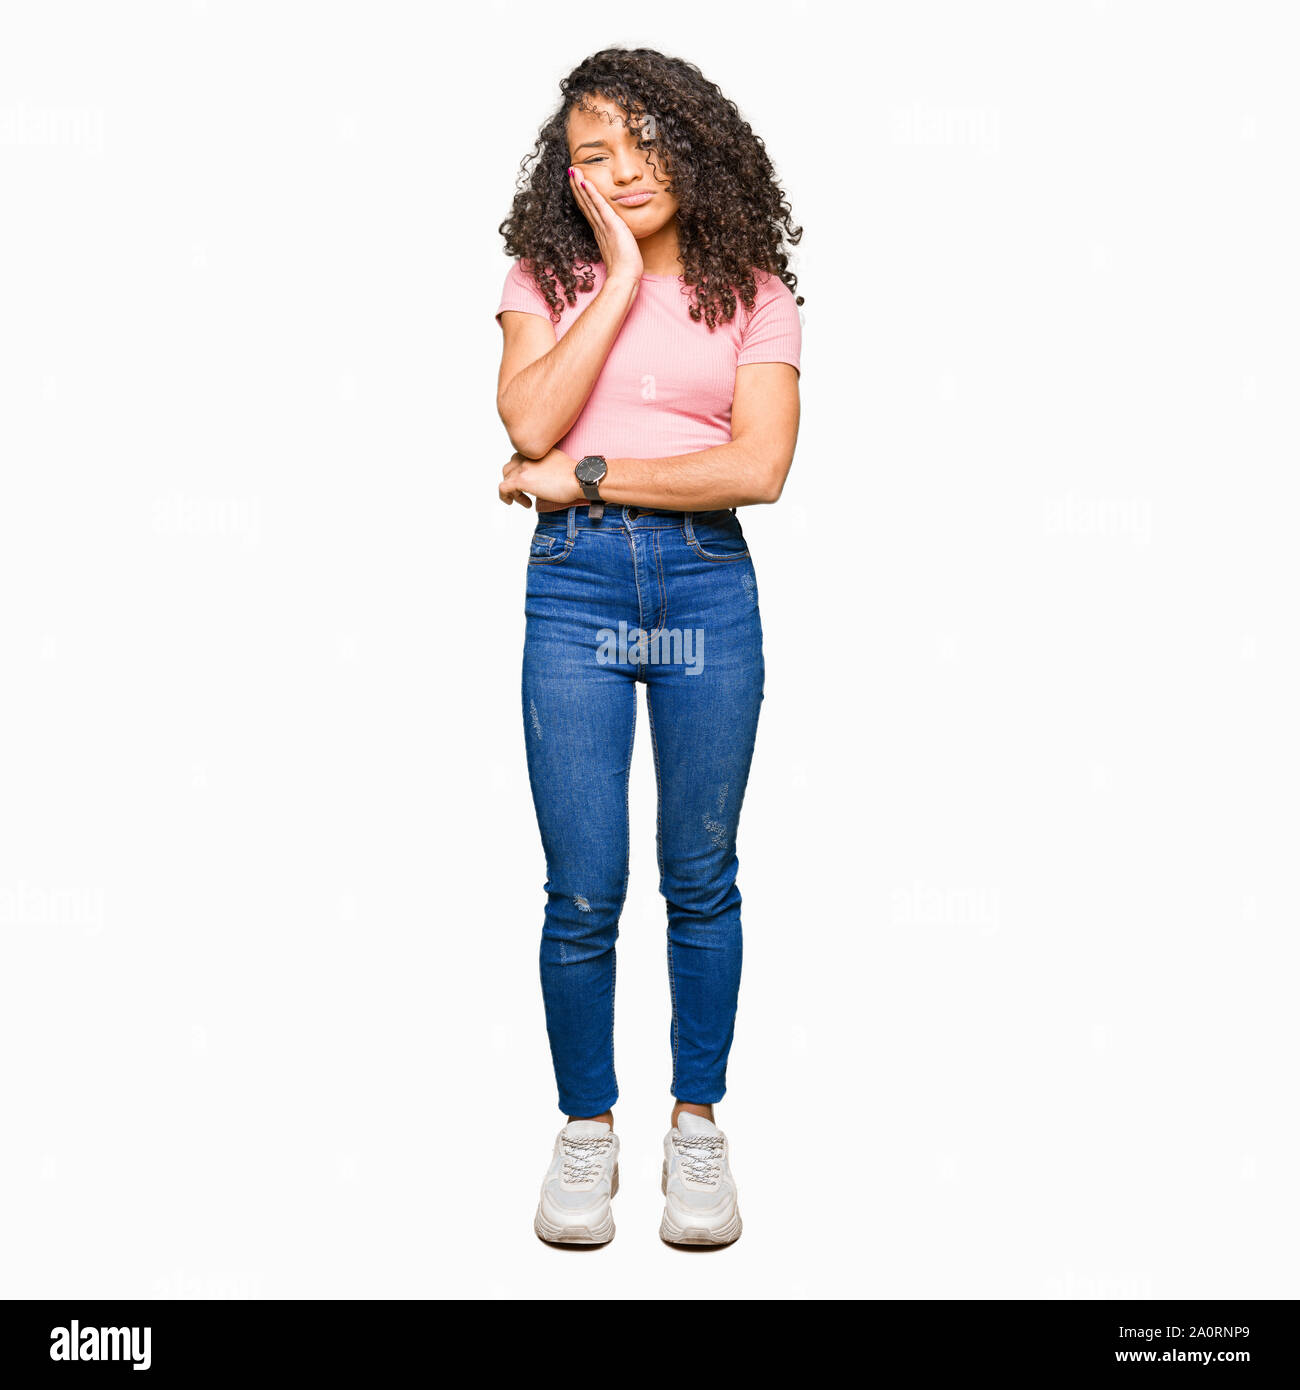 Young beautiful woman with curly hair wearing pink t-shirt thinking looking tired and bored with depression problems with crossed arms. Stock Photo